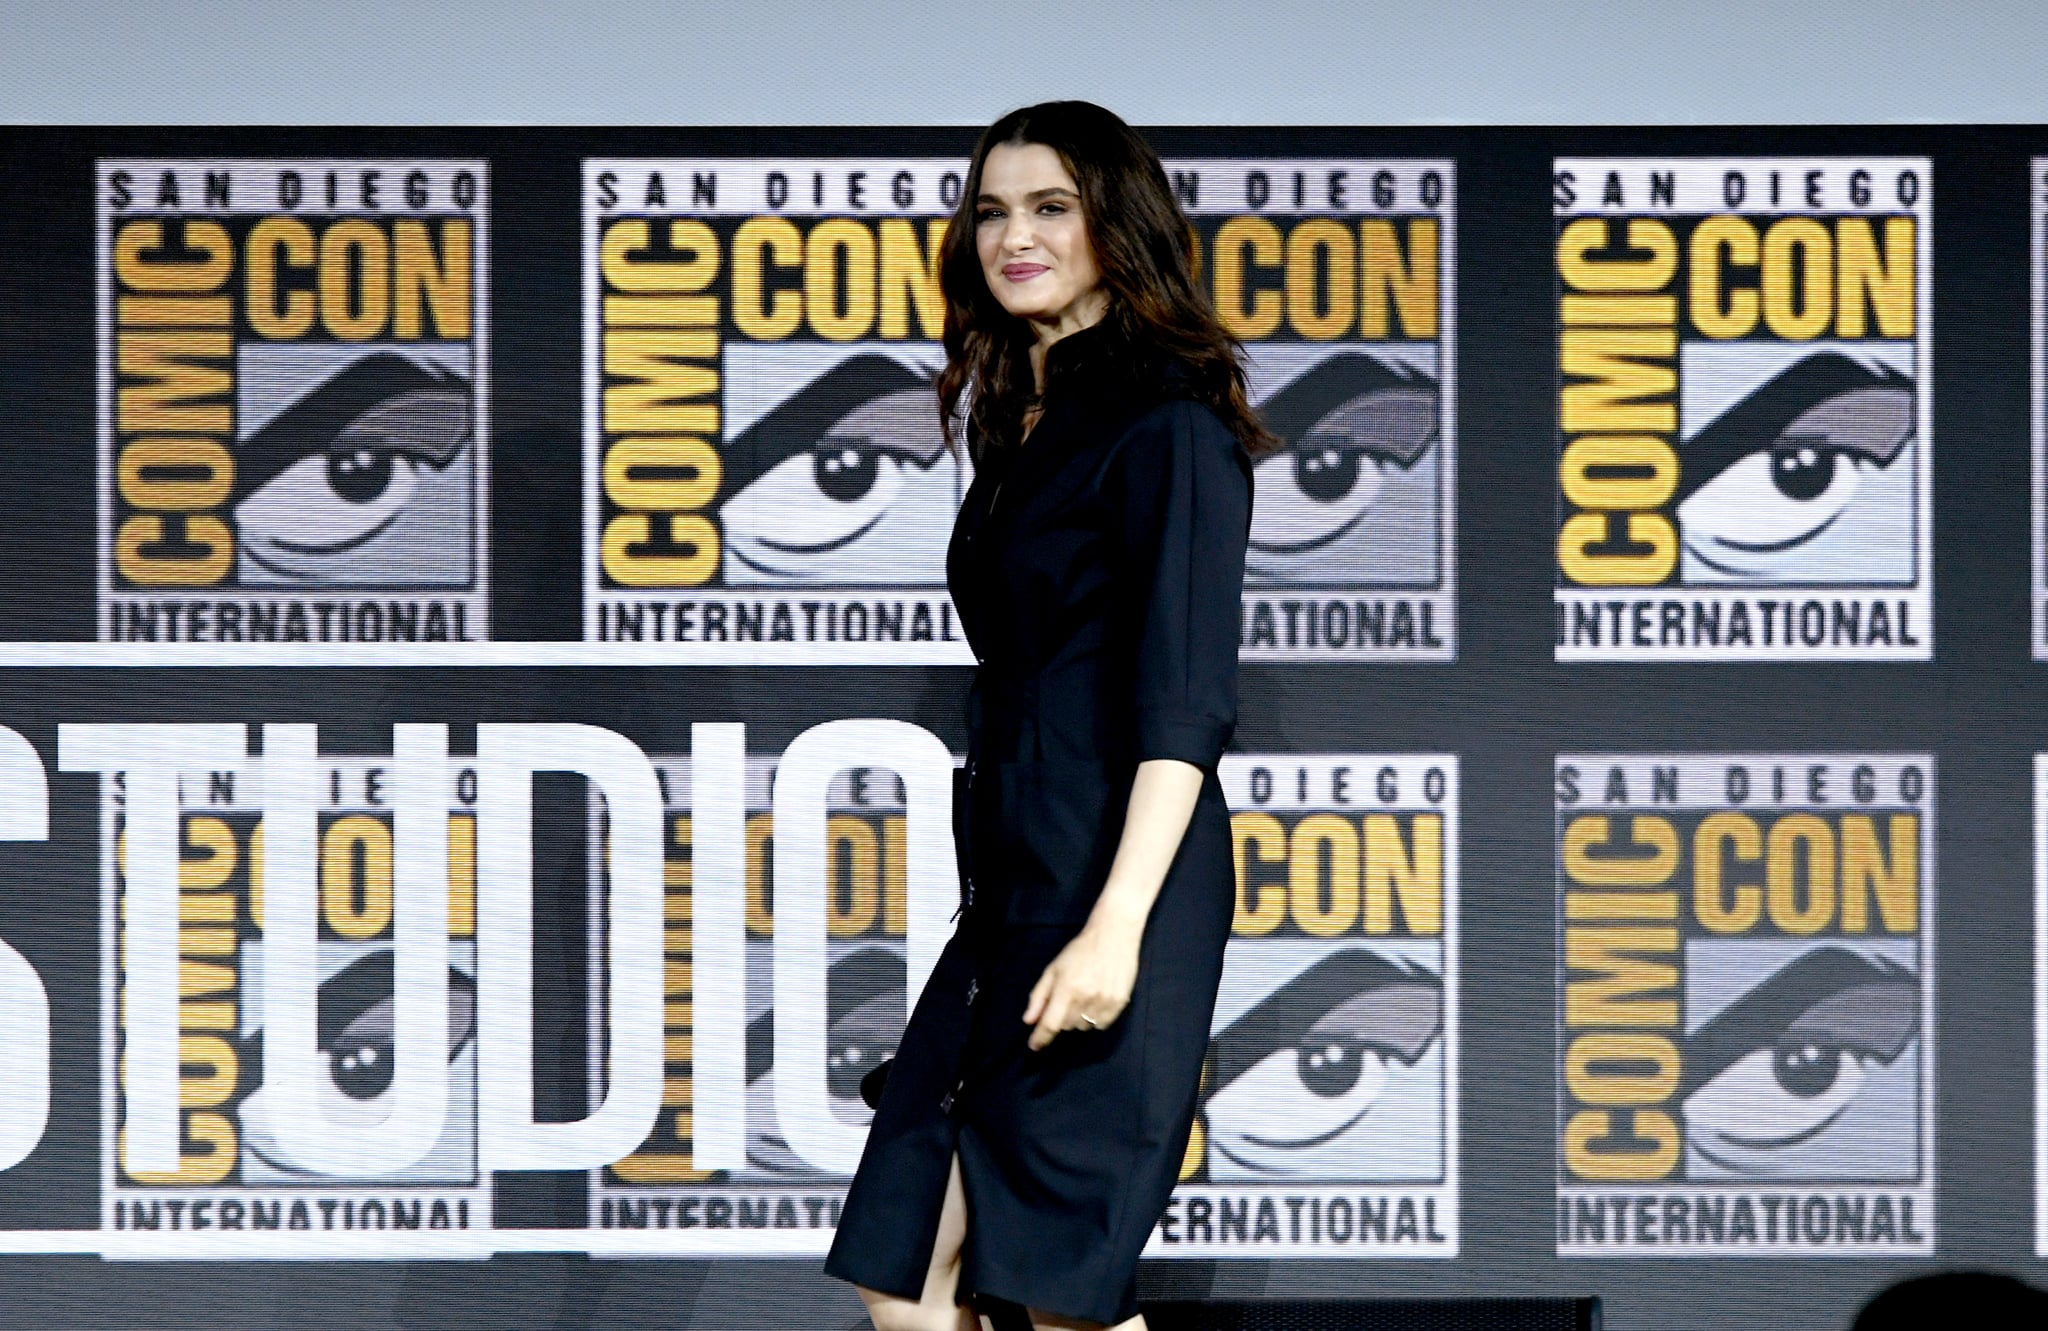 SAN DIEGO, CALIFORNIA - JULY 20: Rachel Weisz speaks at the Marvel Studios Panel during 2019 Comic-Con International at San Diego Convention Center on July 20, 2019 in San Diego, California. (Photo by Kevin Winter/Getty Images)